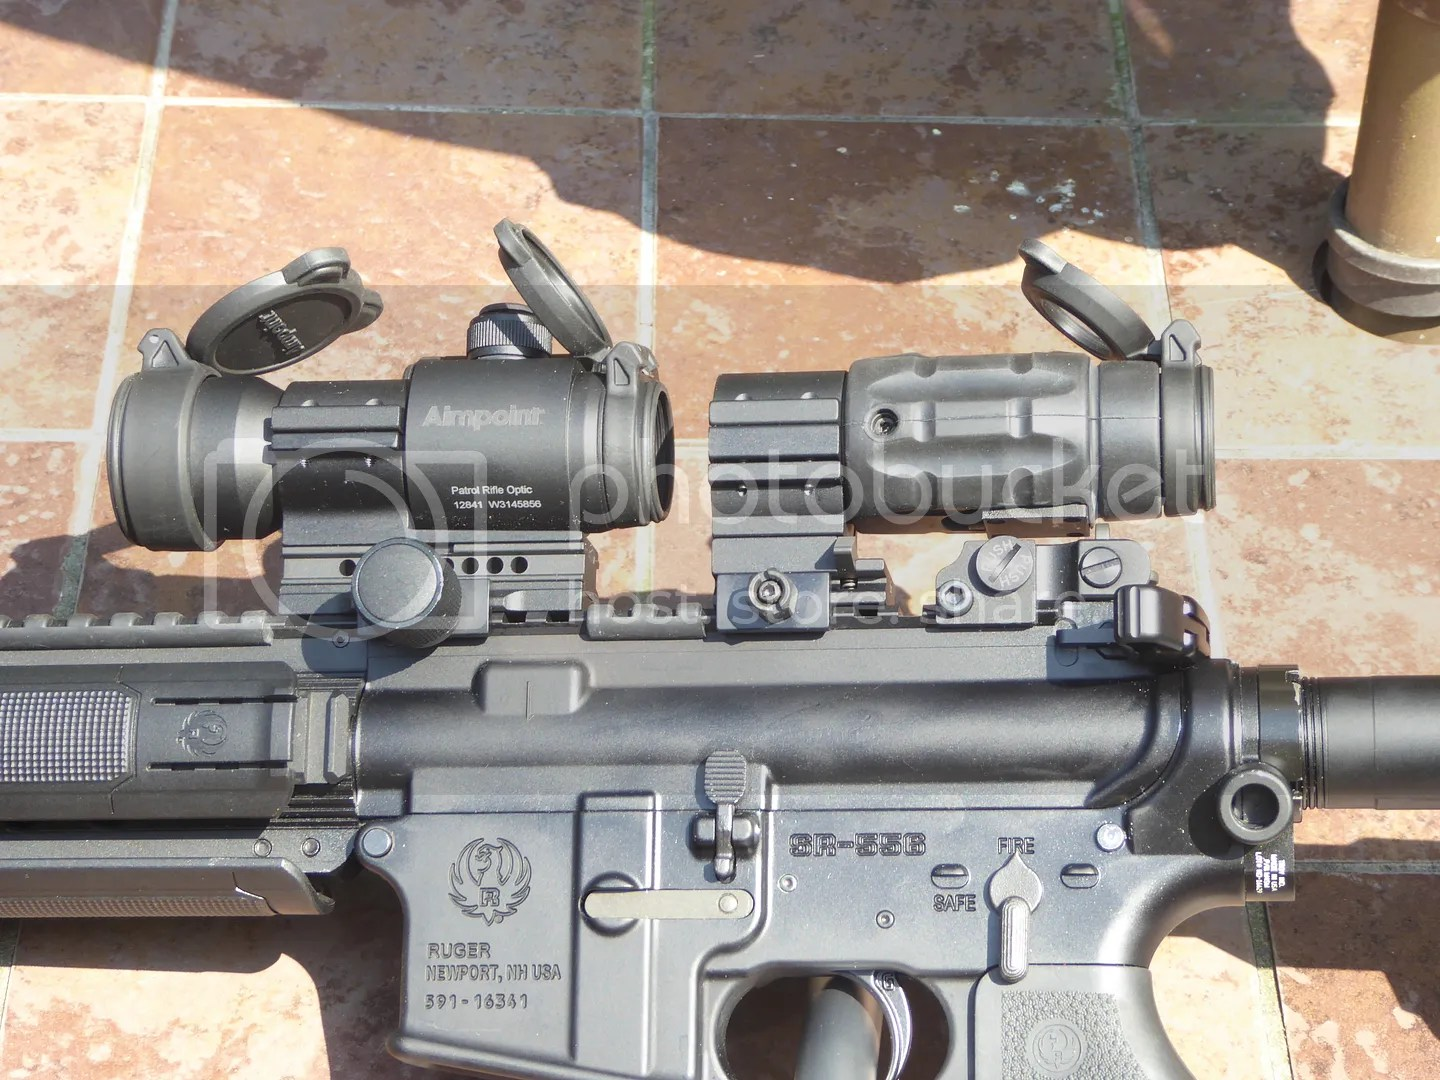 sr556 with aimpoint optics